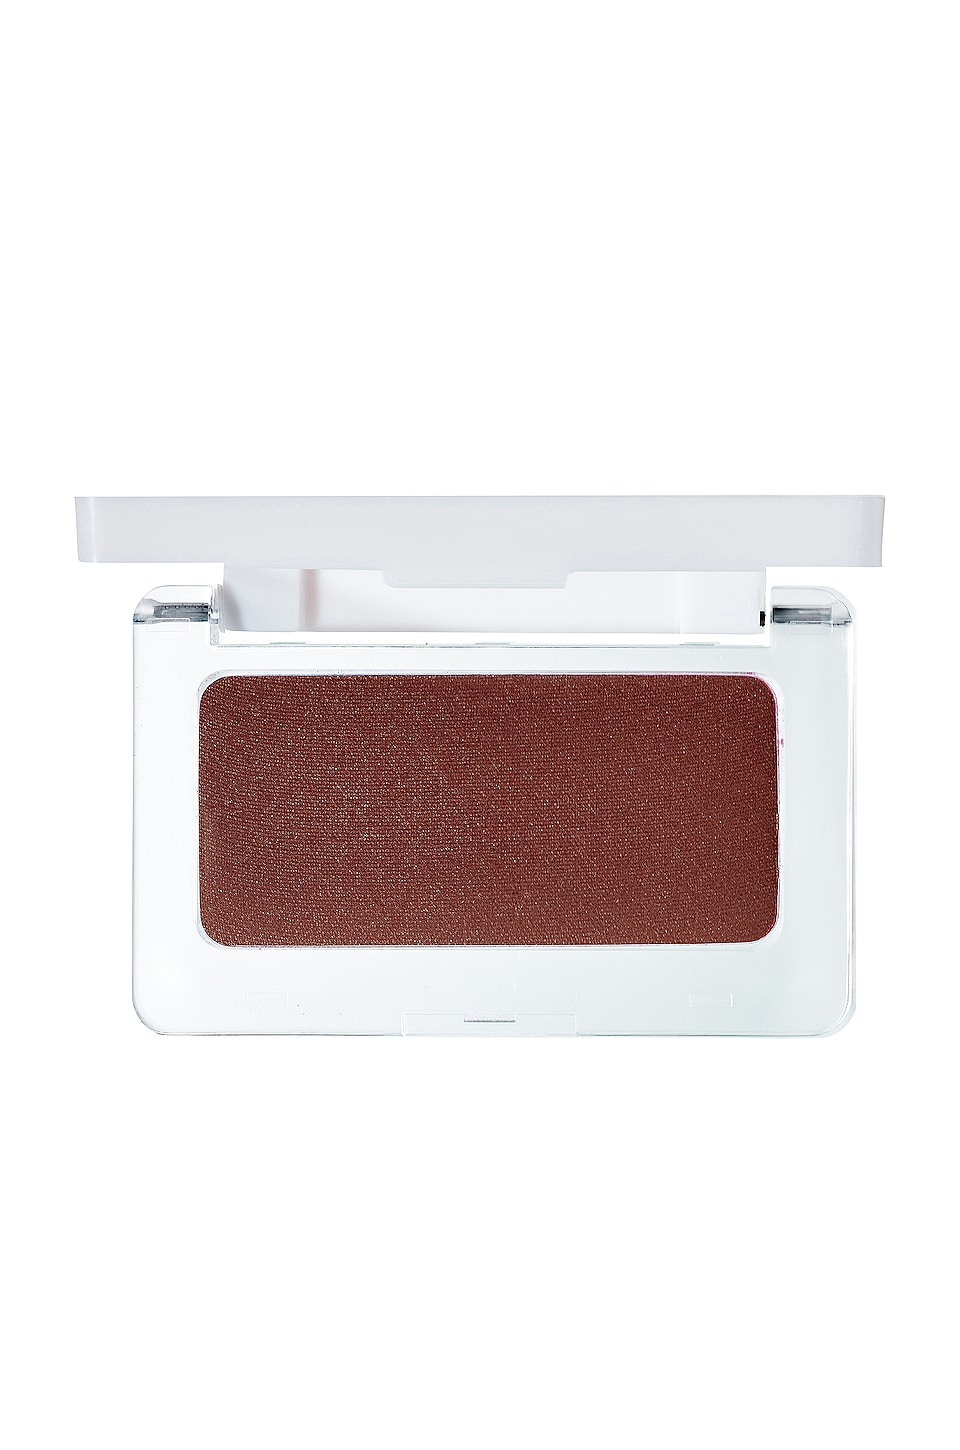 RMS Beauty Pressed Blush in Moon Cry